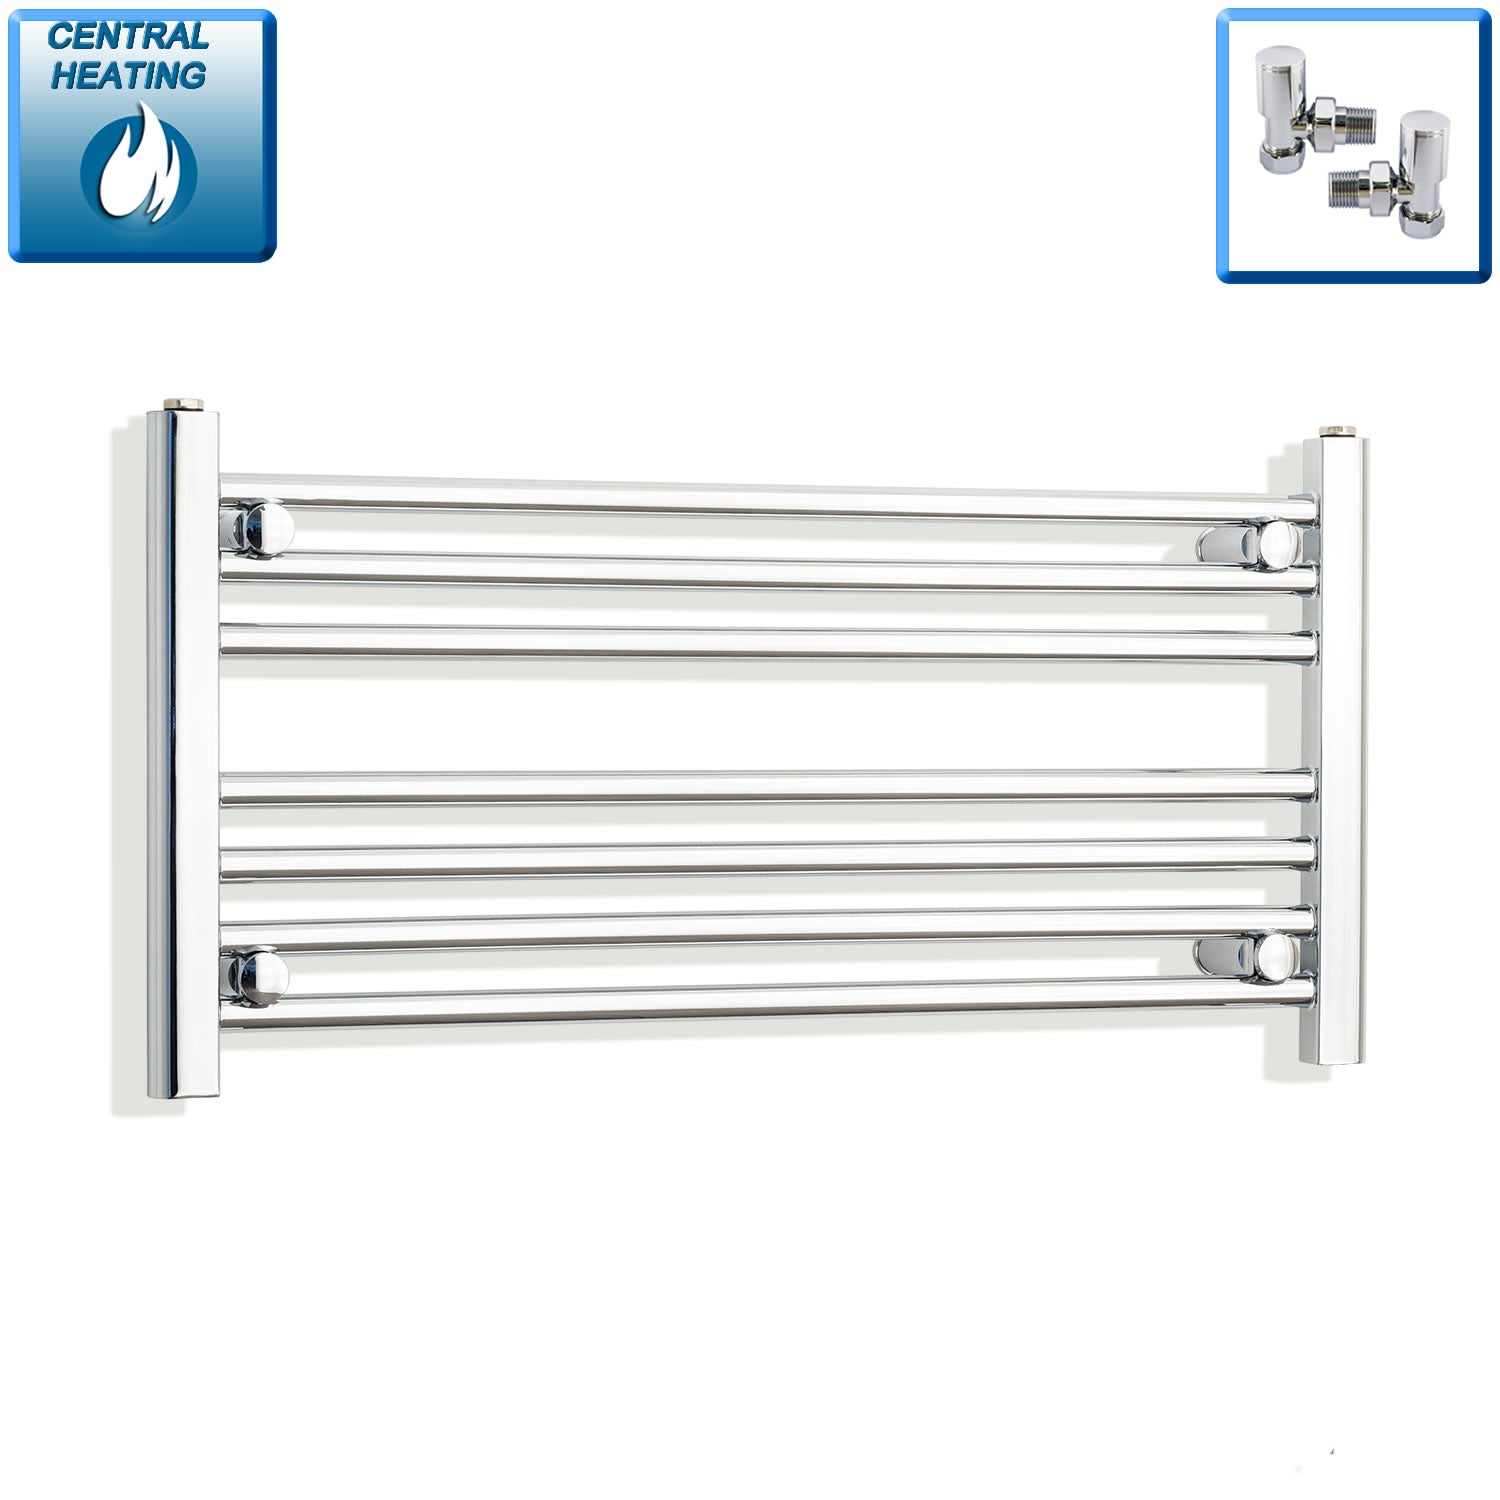 800mm Wide 400mm High Flat Chrome Heated Towel Rail Radiator HTR,With Angled Valve